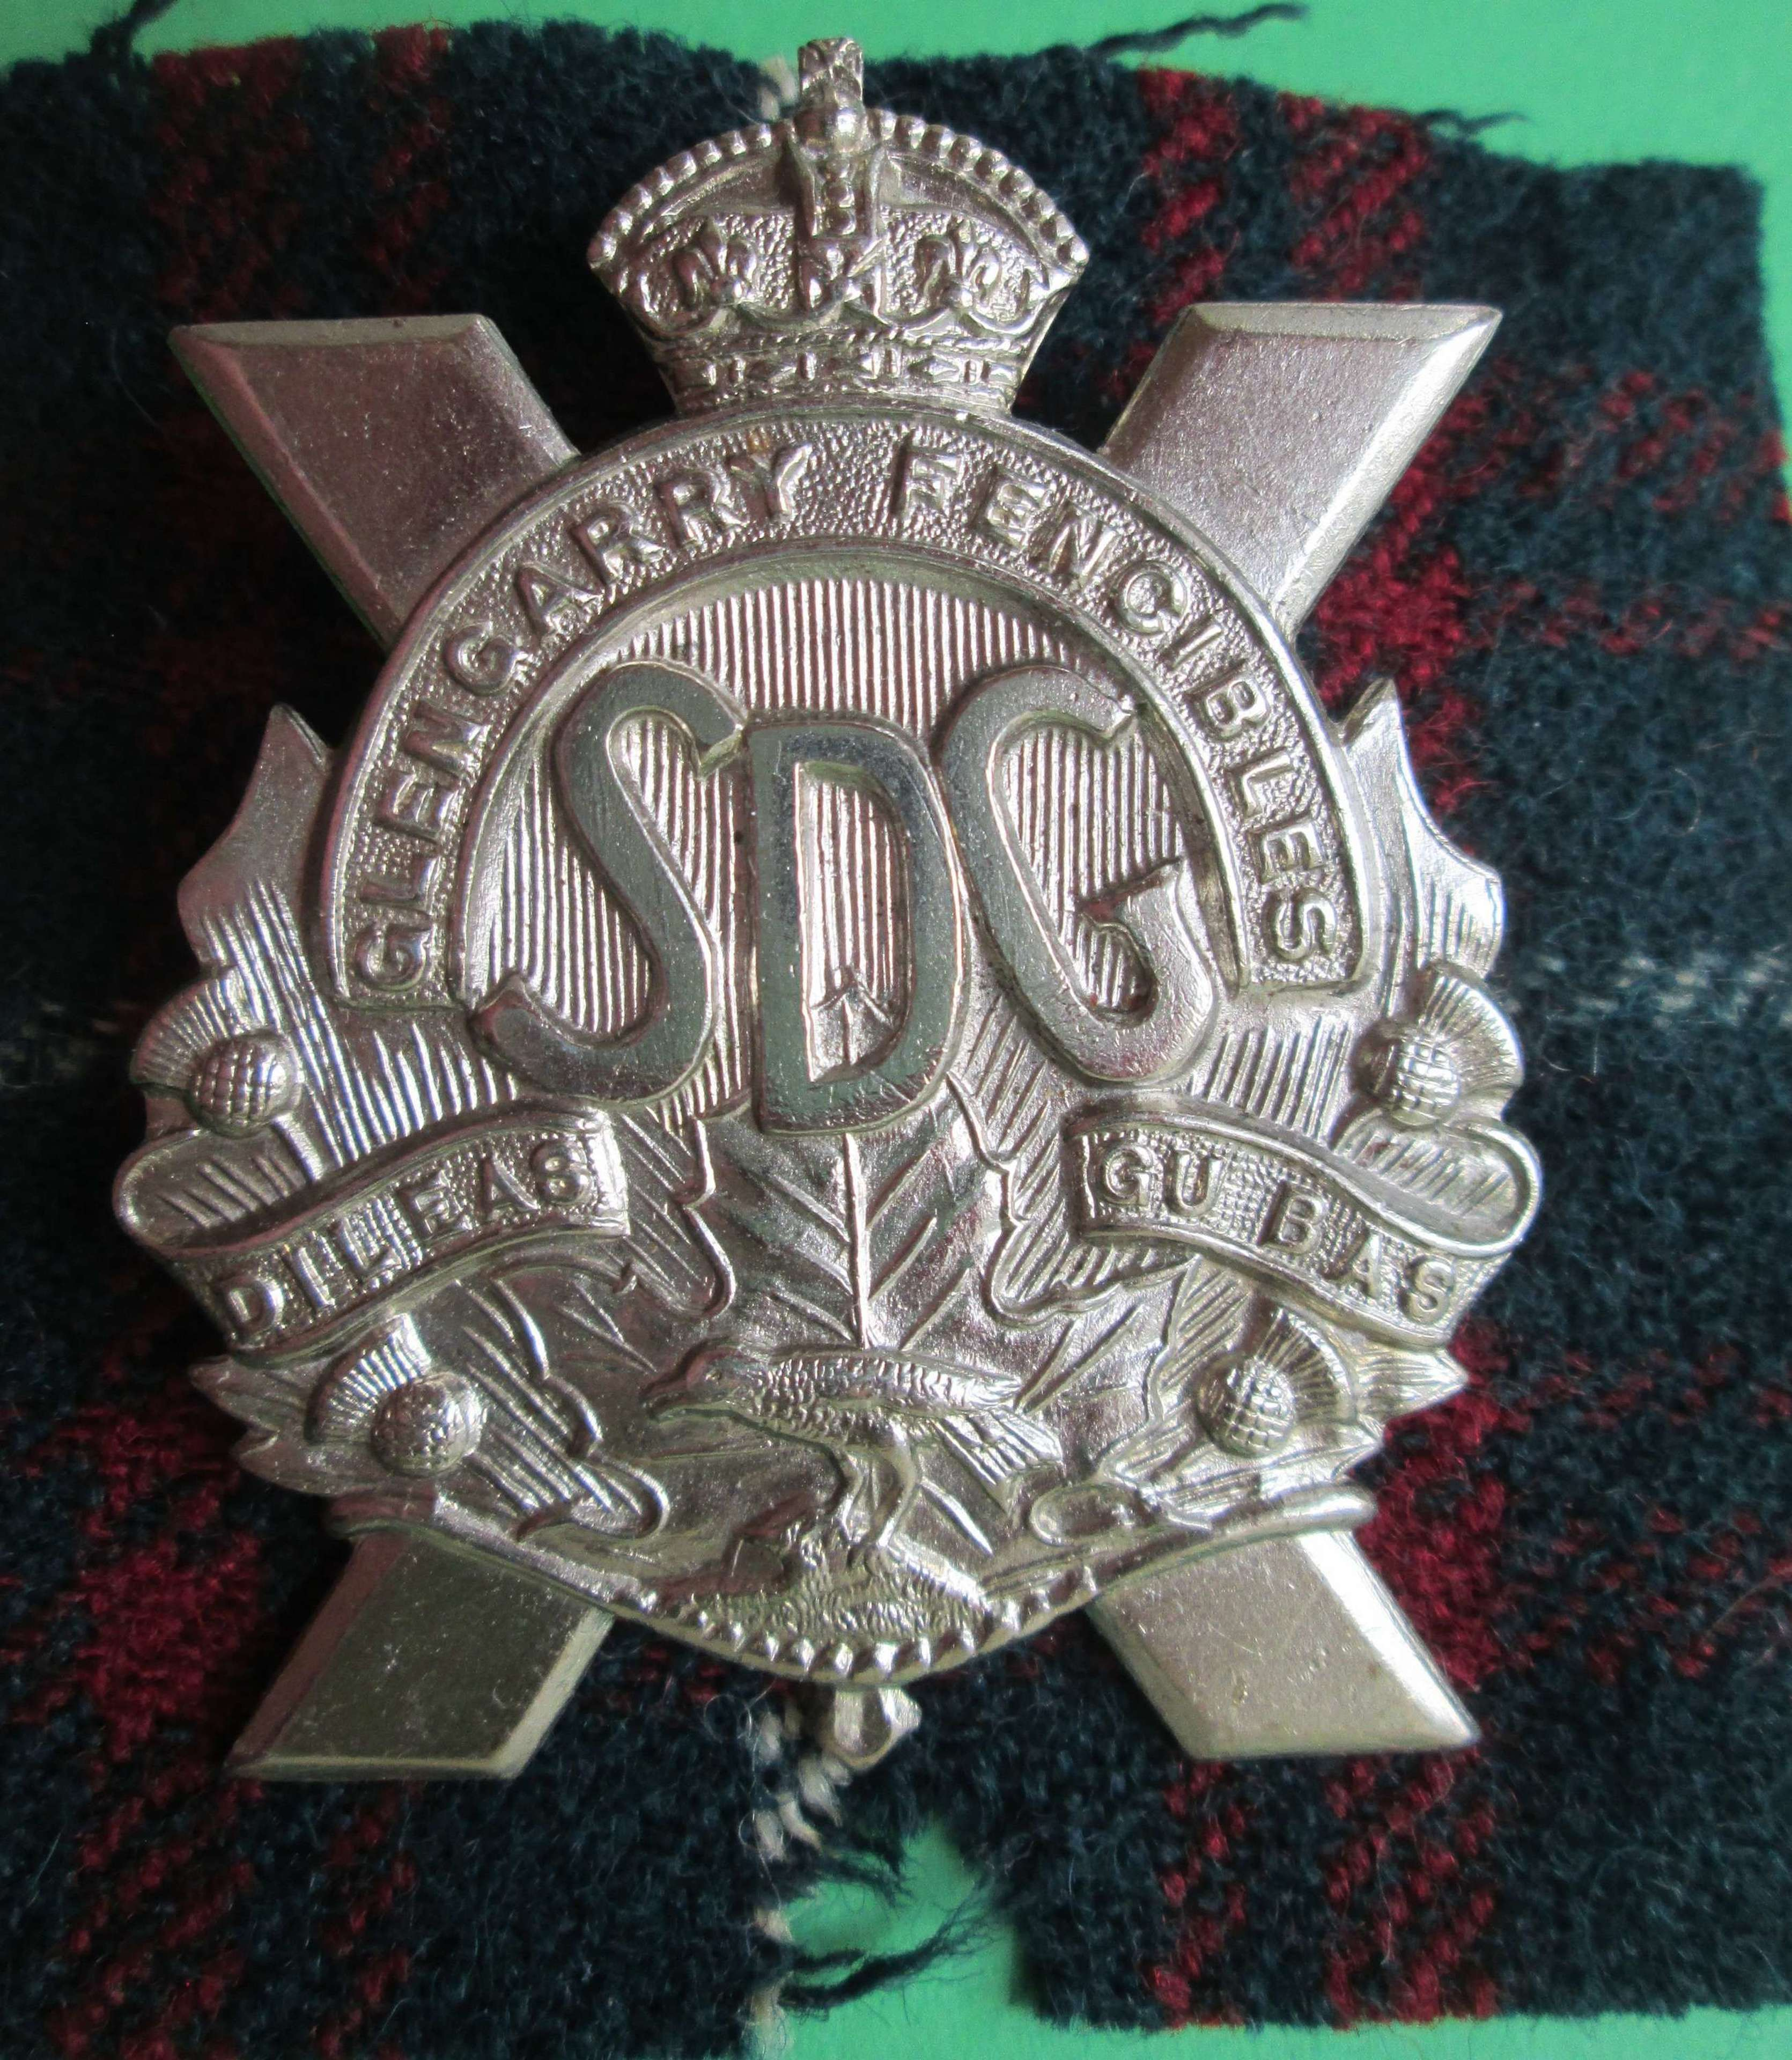 A STORMONT, DUNDAS AND GLENGARRY HIGHLANDERS CANADIAN DIVISION BADGE